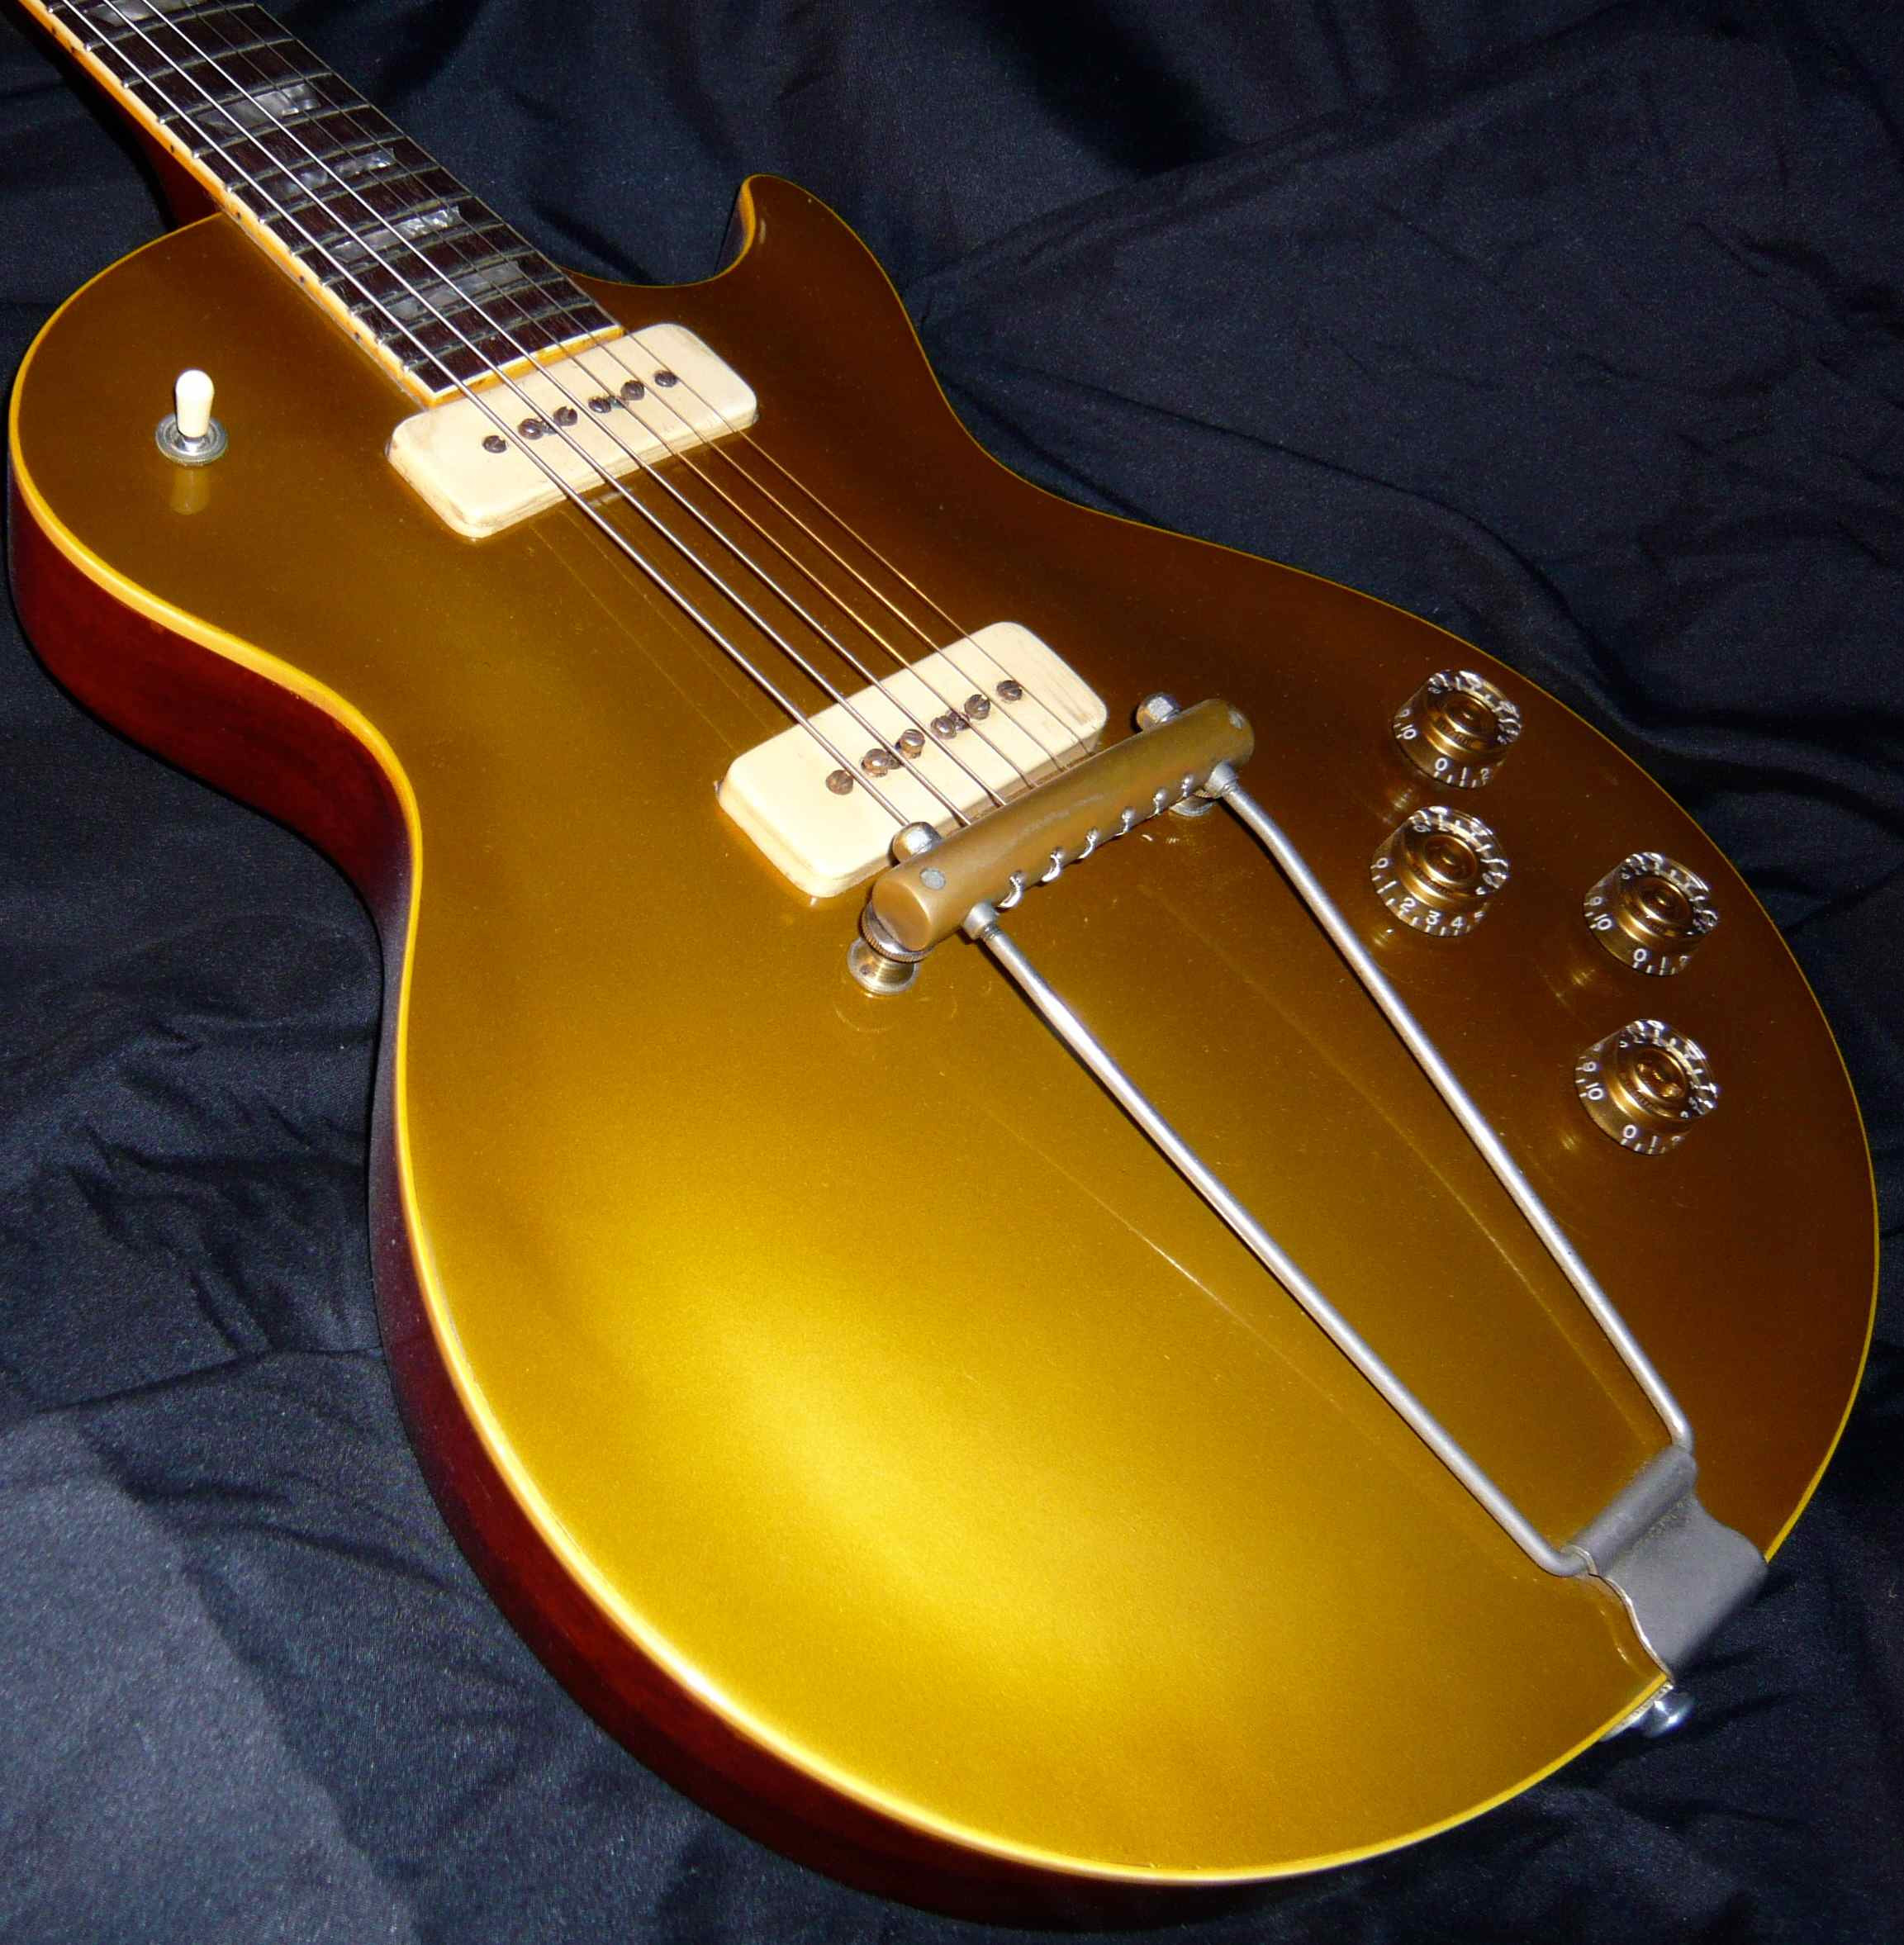 Gibson Les Paul Gold top Nuevo Gibson Les Paul Goldtop 1952 Peter Green Duster Of 45  Innovador Gibson Les Paul Gold top